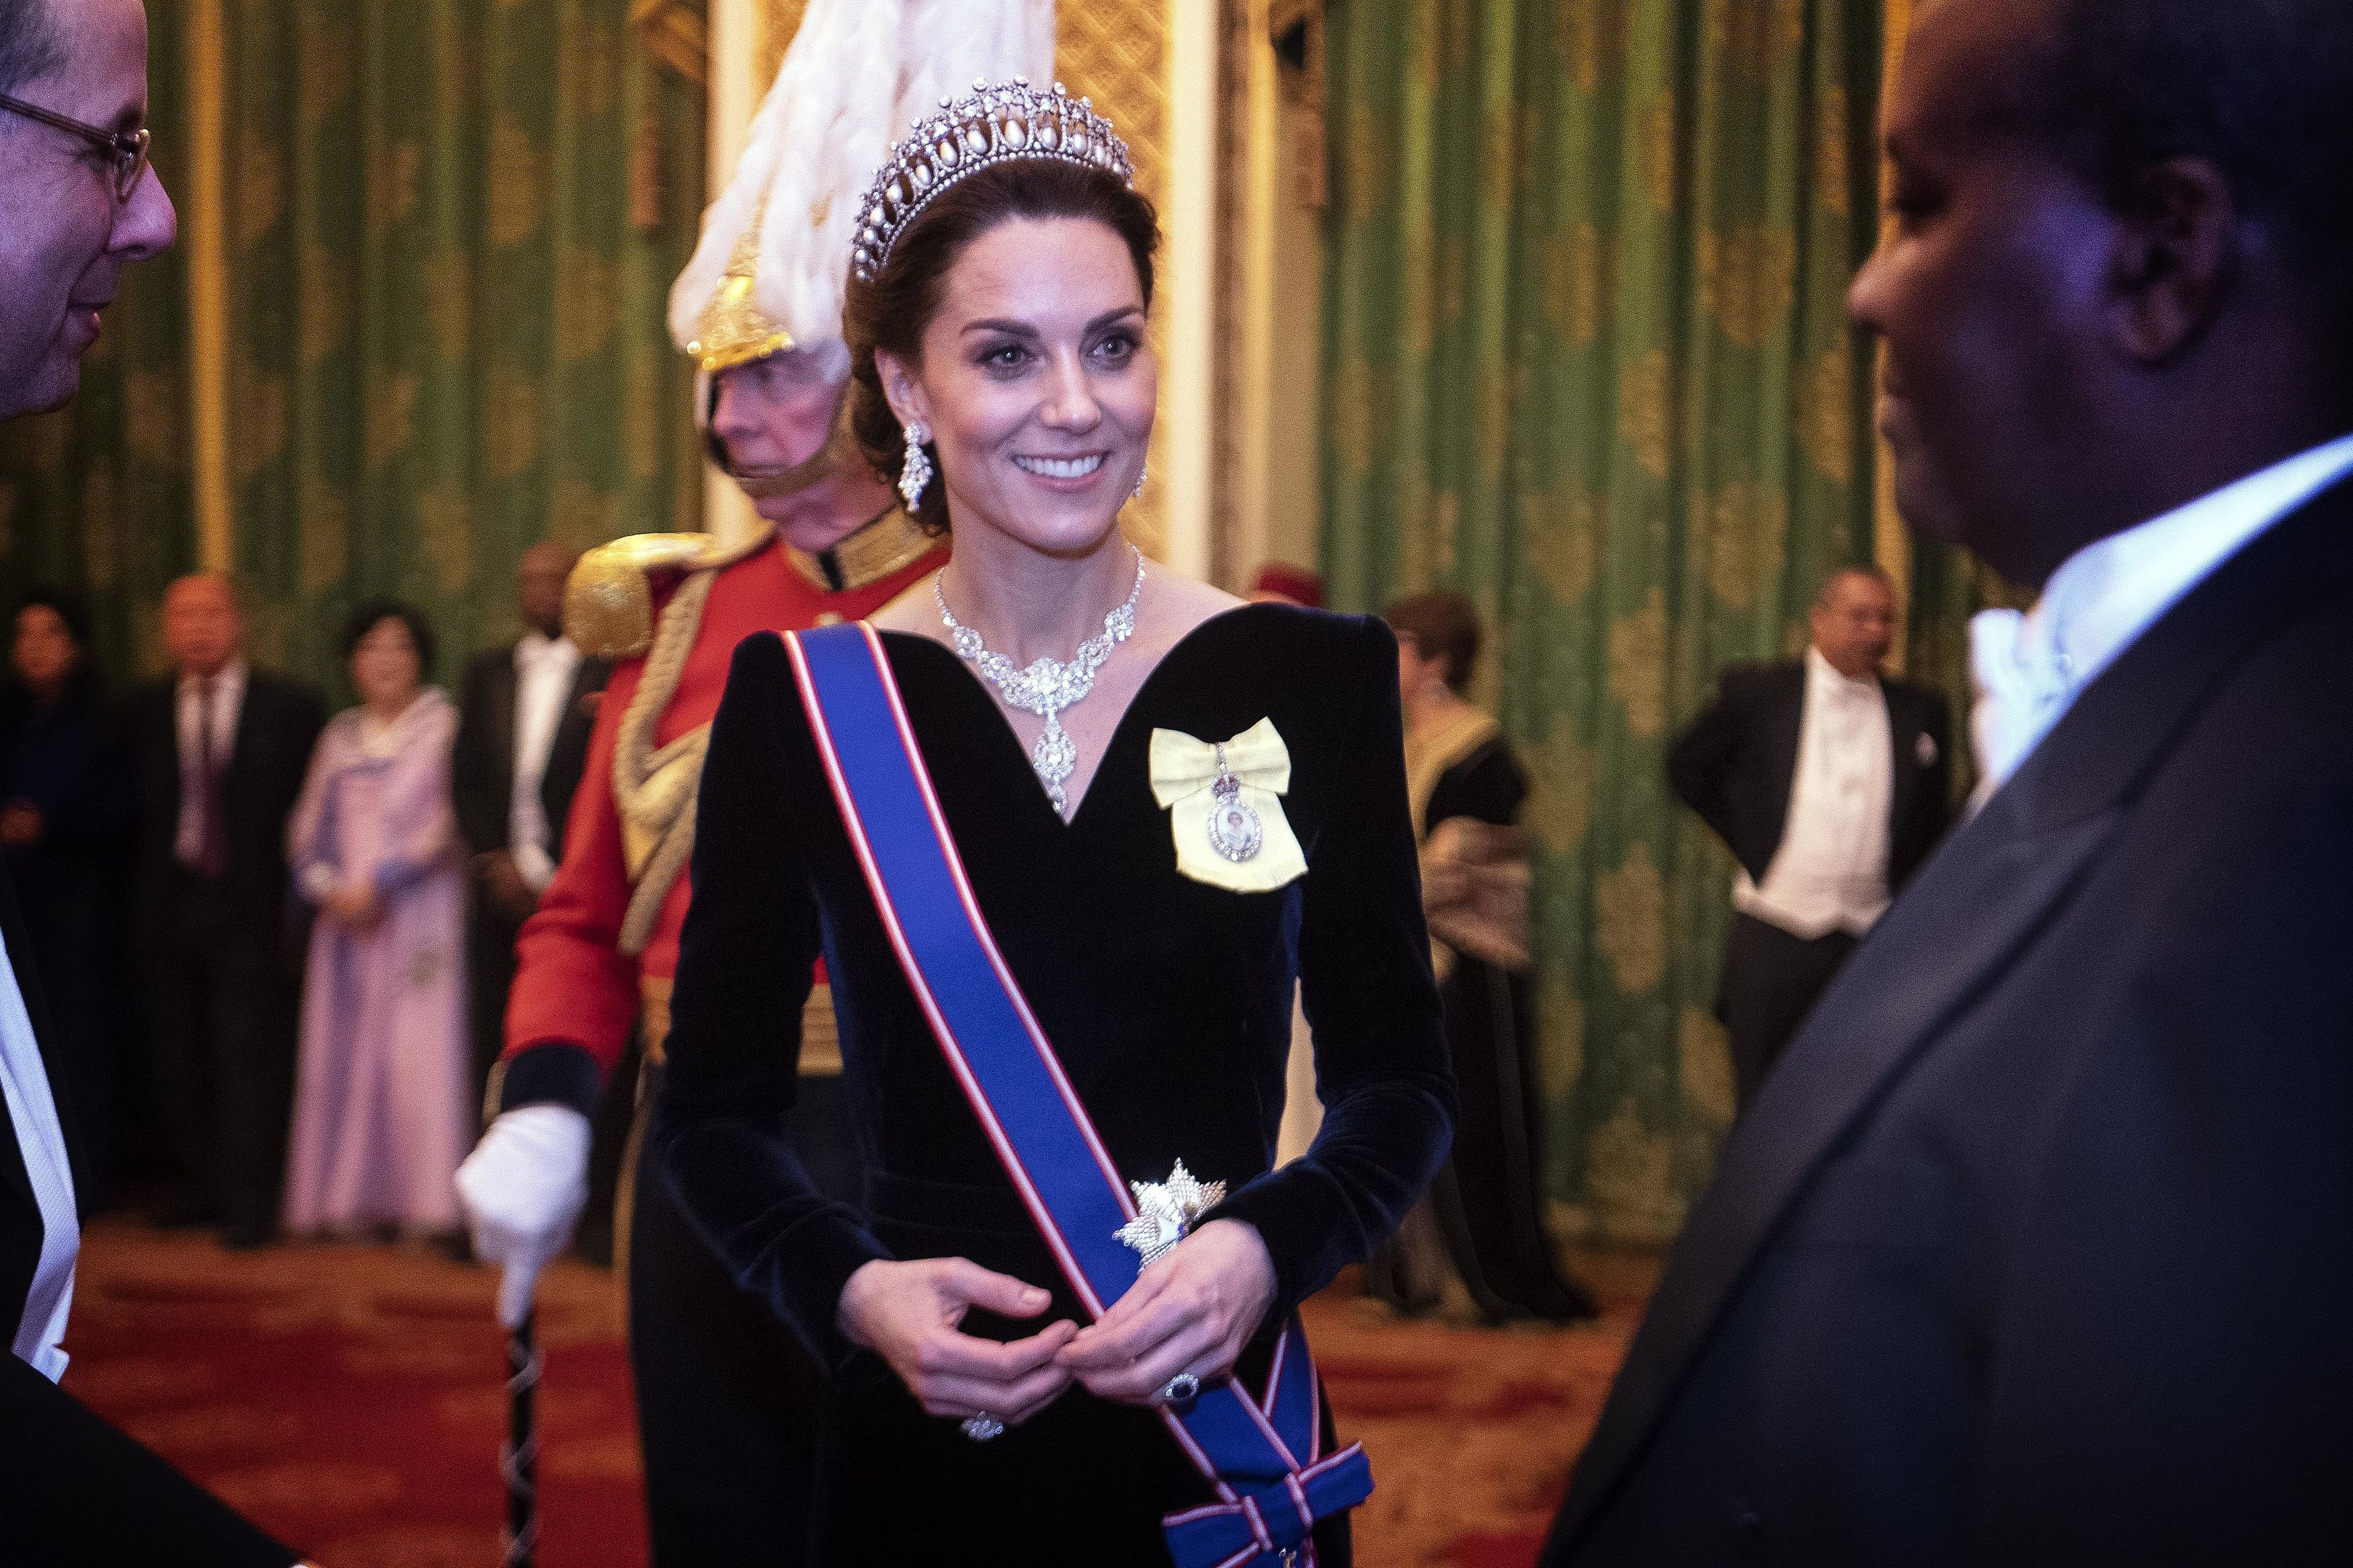 Kate Middleton Wore a Velvet Alexander McQueen Look to the Queen's Diplomatic Reception